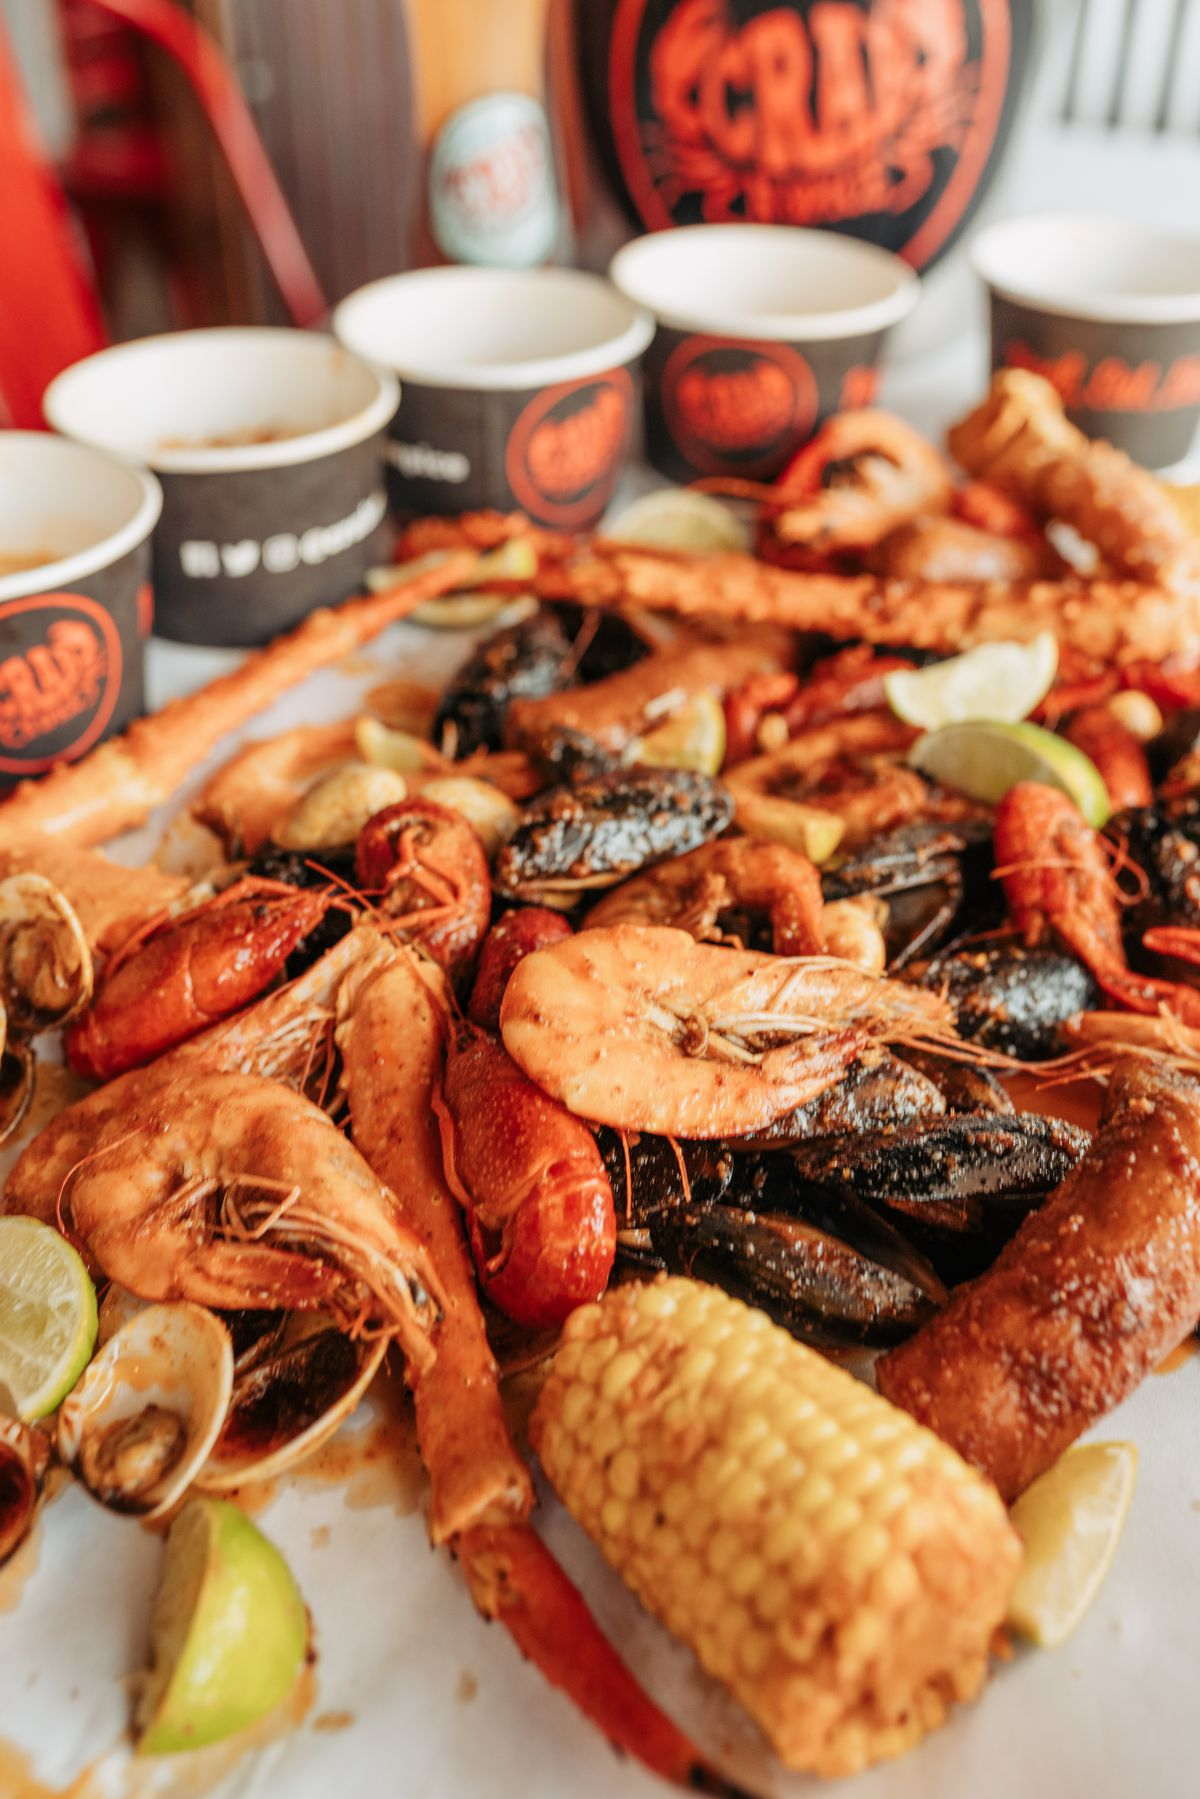 A medley of seafood on a white background.